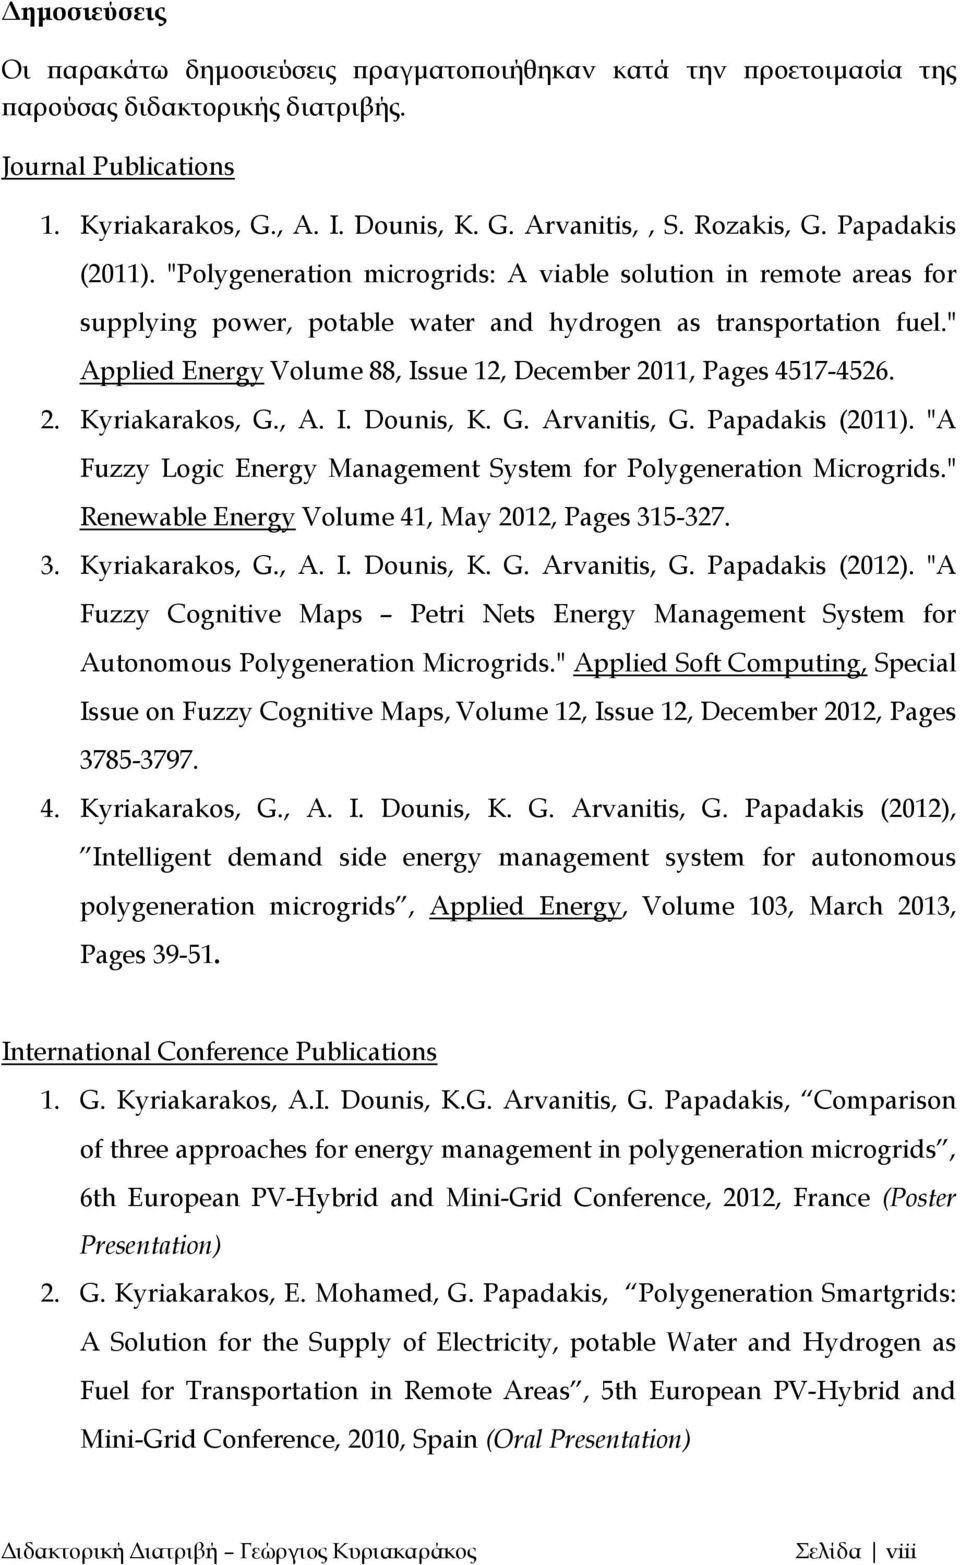 """ Applied Energy Volume 88, Issue 12, December 2011, Pages 4517-4526. 2. Kyriakarakos, G., A. I. Dounis, K. G. Arvanitis, G. Papadakis (2011)."